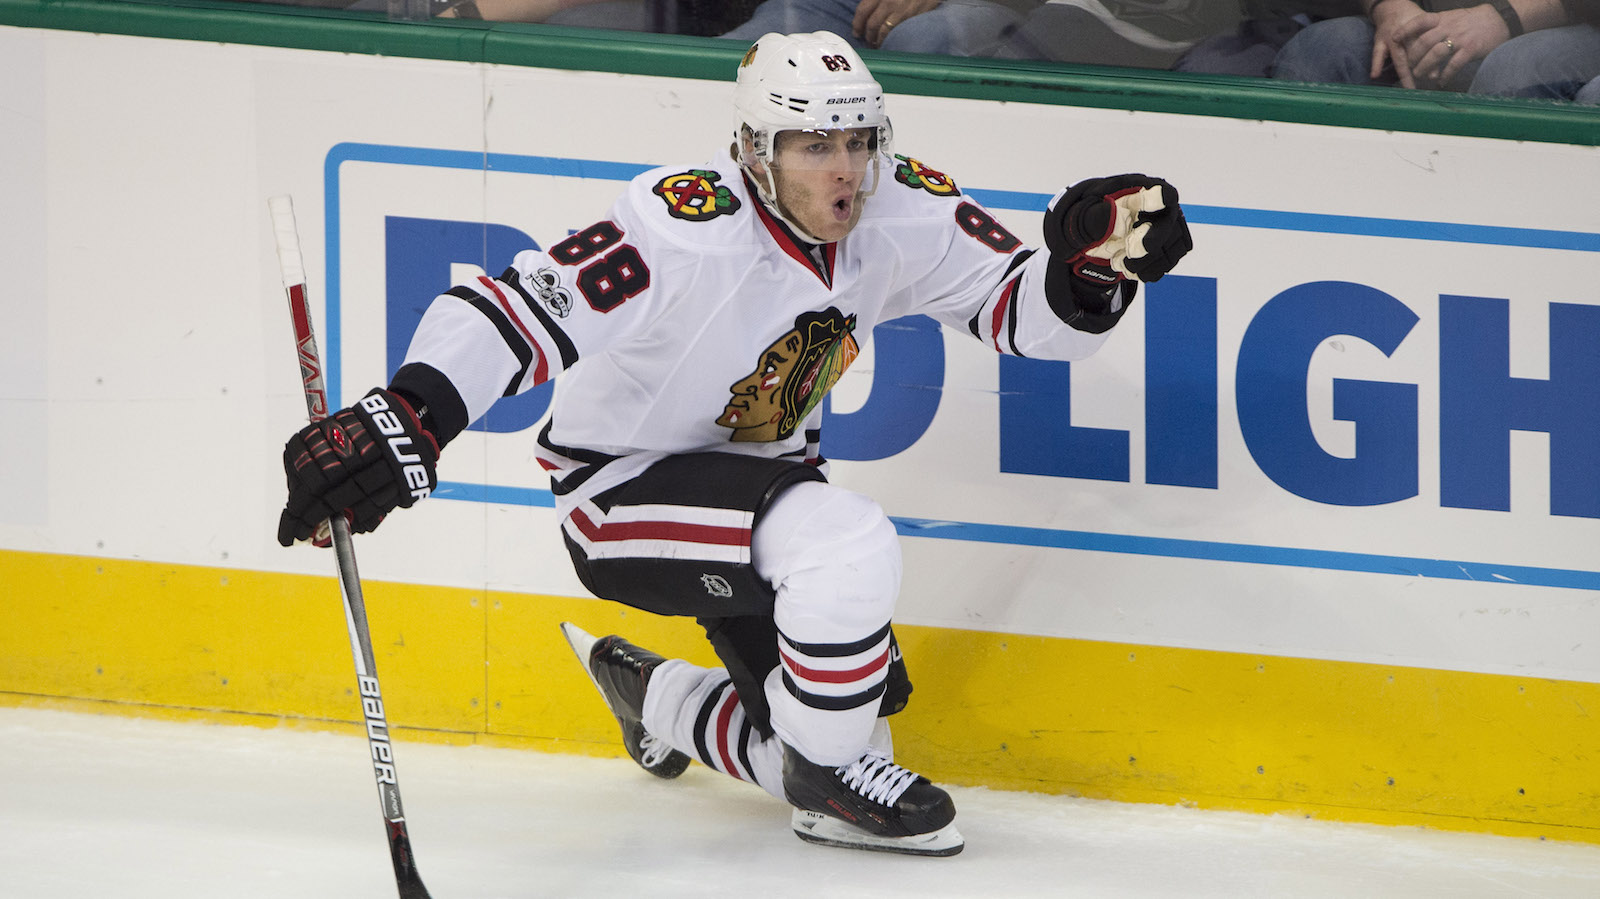 Feb 4, 2017; Dallas, TX, USA; Chicago Blackhawks right wing Patrick Kane (88) celebrates his game tying goal against the Dallas Stars during the third period at the American Airlines Center. The Blackhawks defeat the Stars 5-3. Mandatory Credit: Jerome Miron-USA TODAY Sports